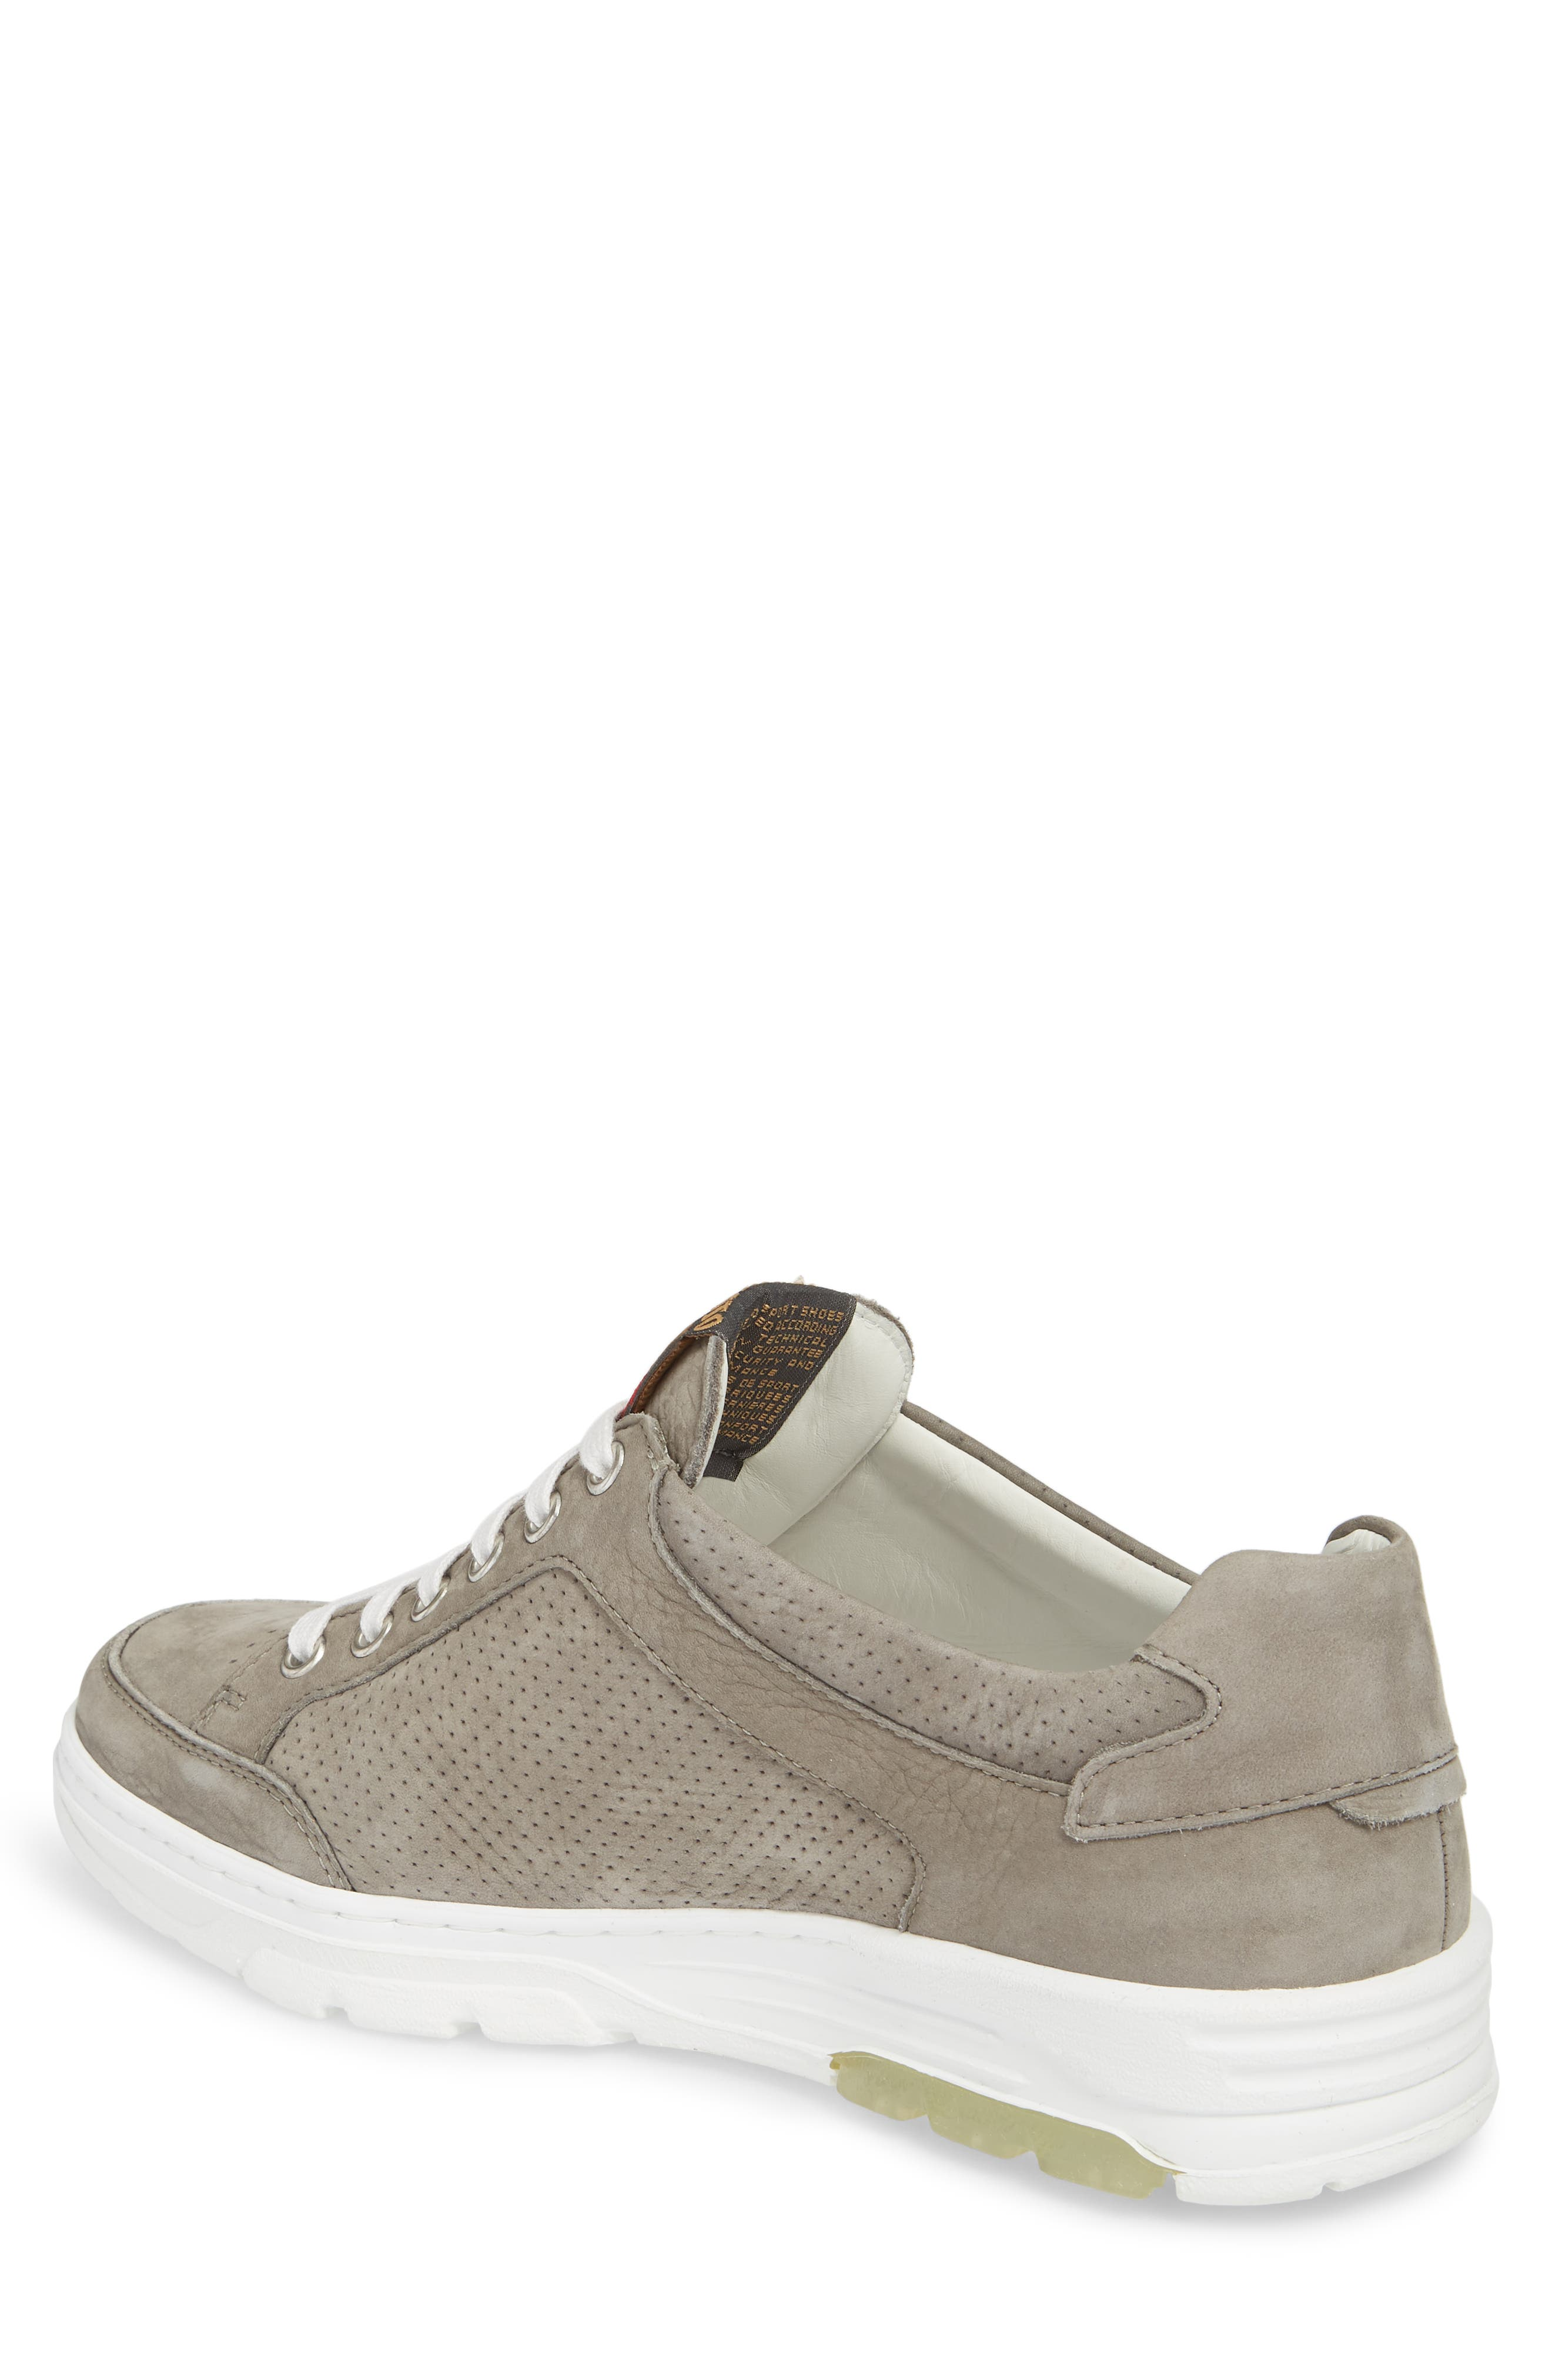 MEPHISTO,                             Mathias Perforated Sneaker,                             Alternate thumbnail 2, color,                             031